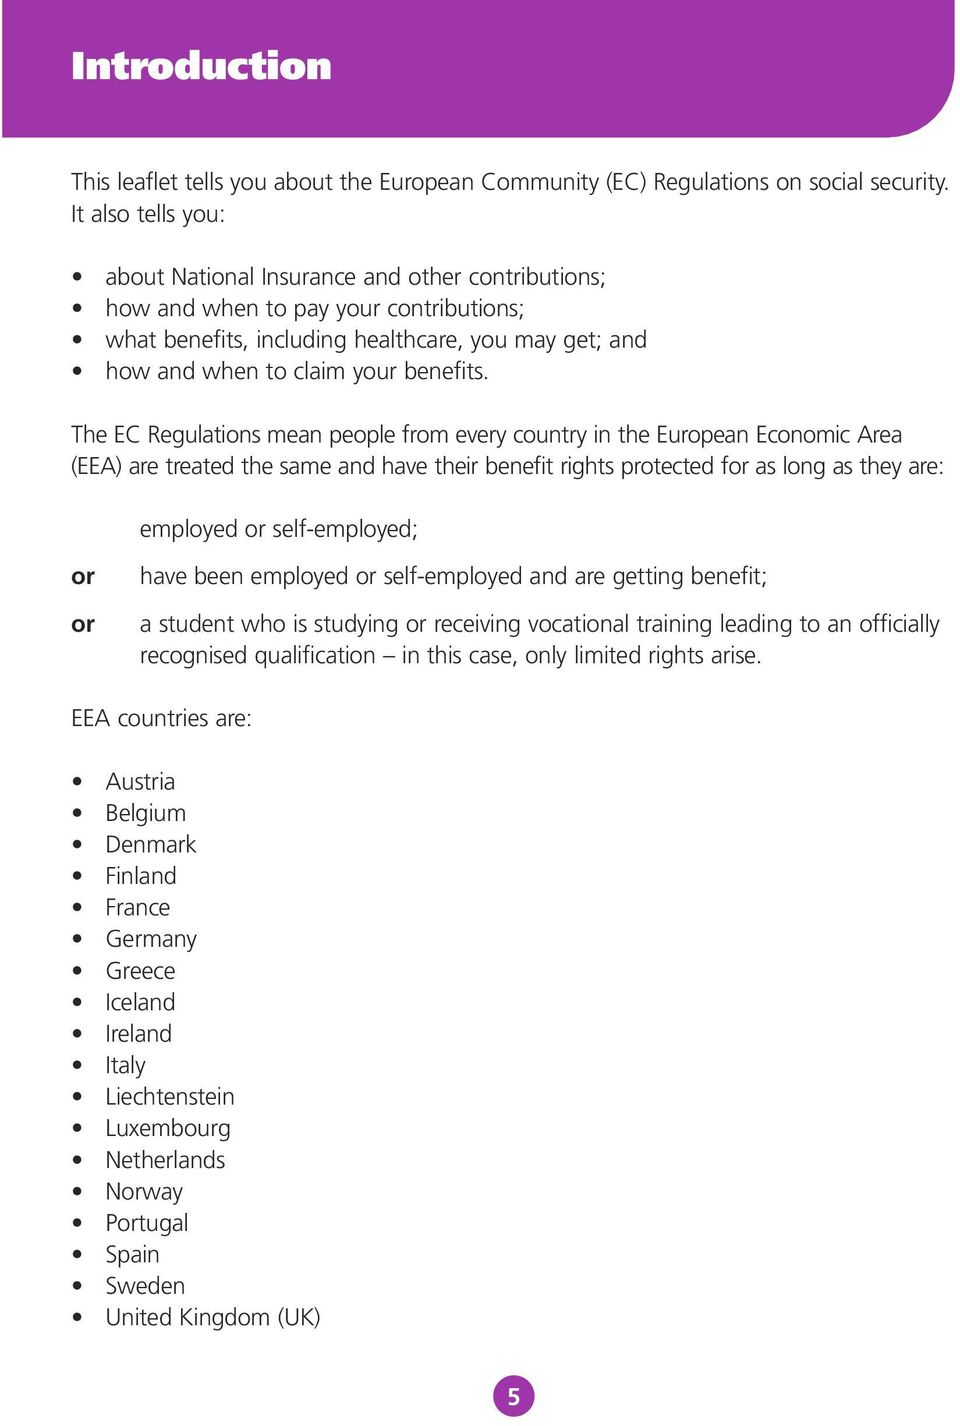 The EC Regulations mean people from every country in the European Economic Area (EEA) are treated the same and have their benefit rights protected for as long as they are: employed or self-employed;